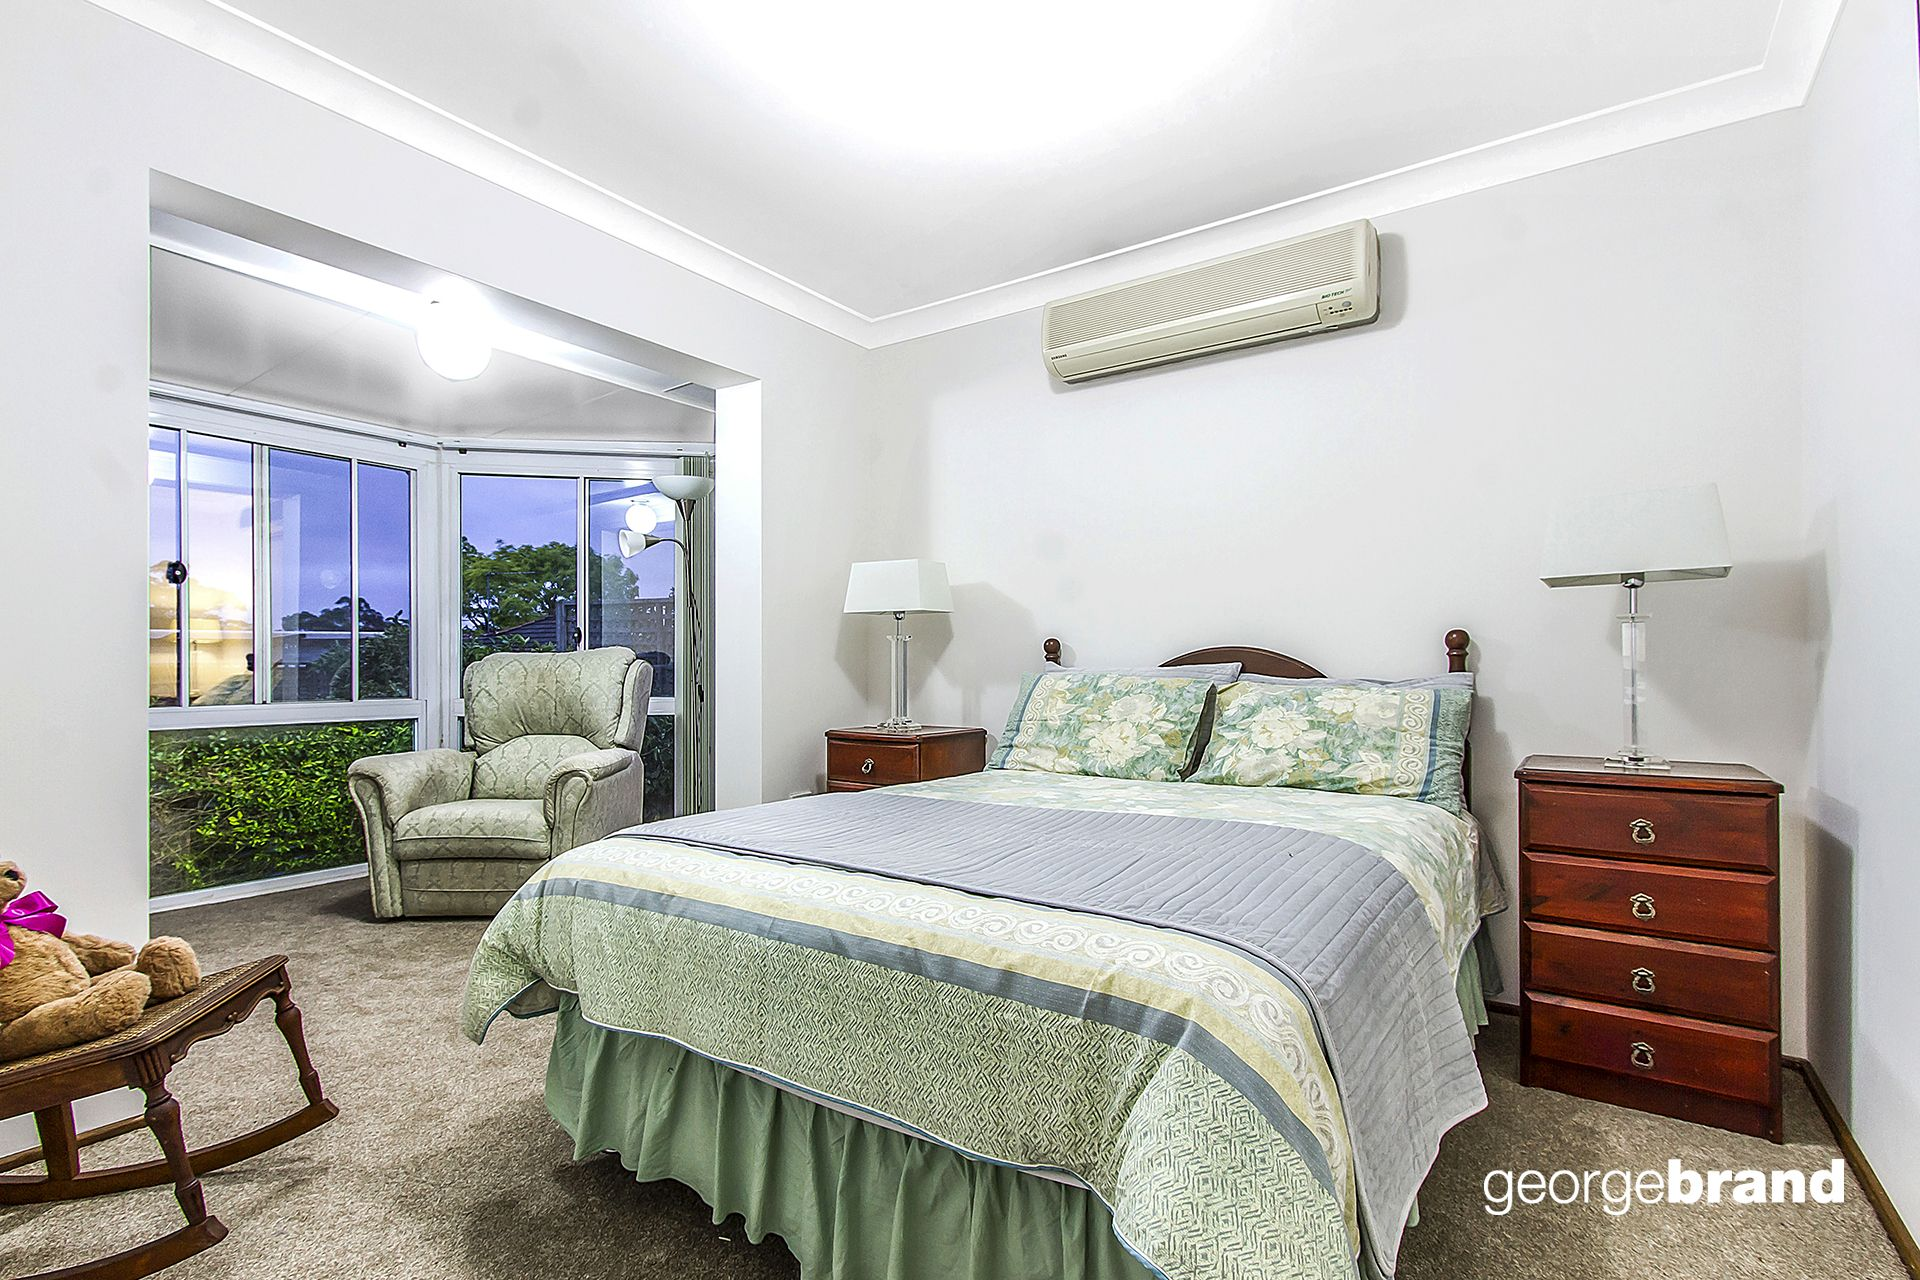 Kariong Real Estate: 5 BEDROOMS PLUS STUDY!